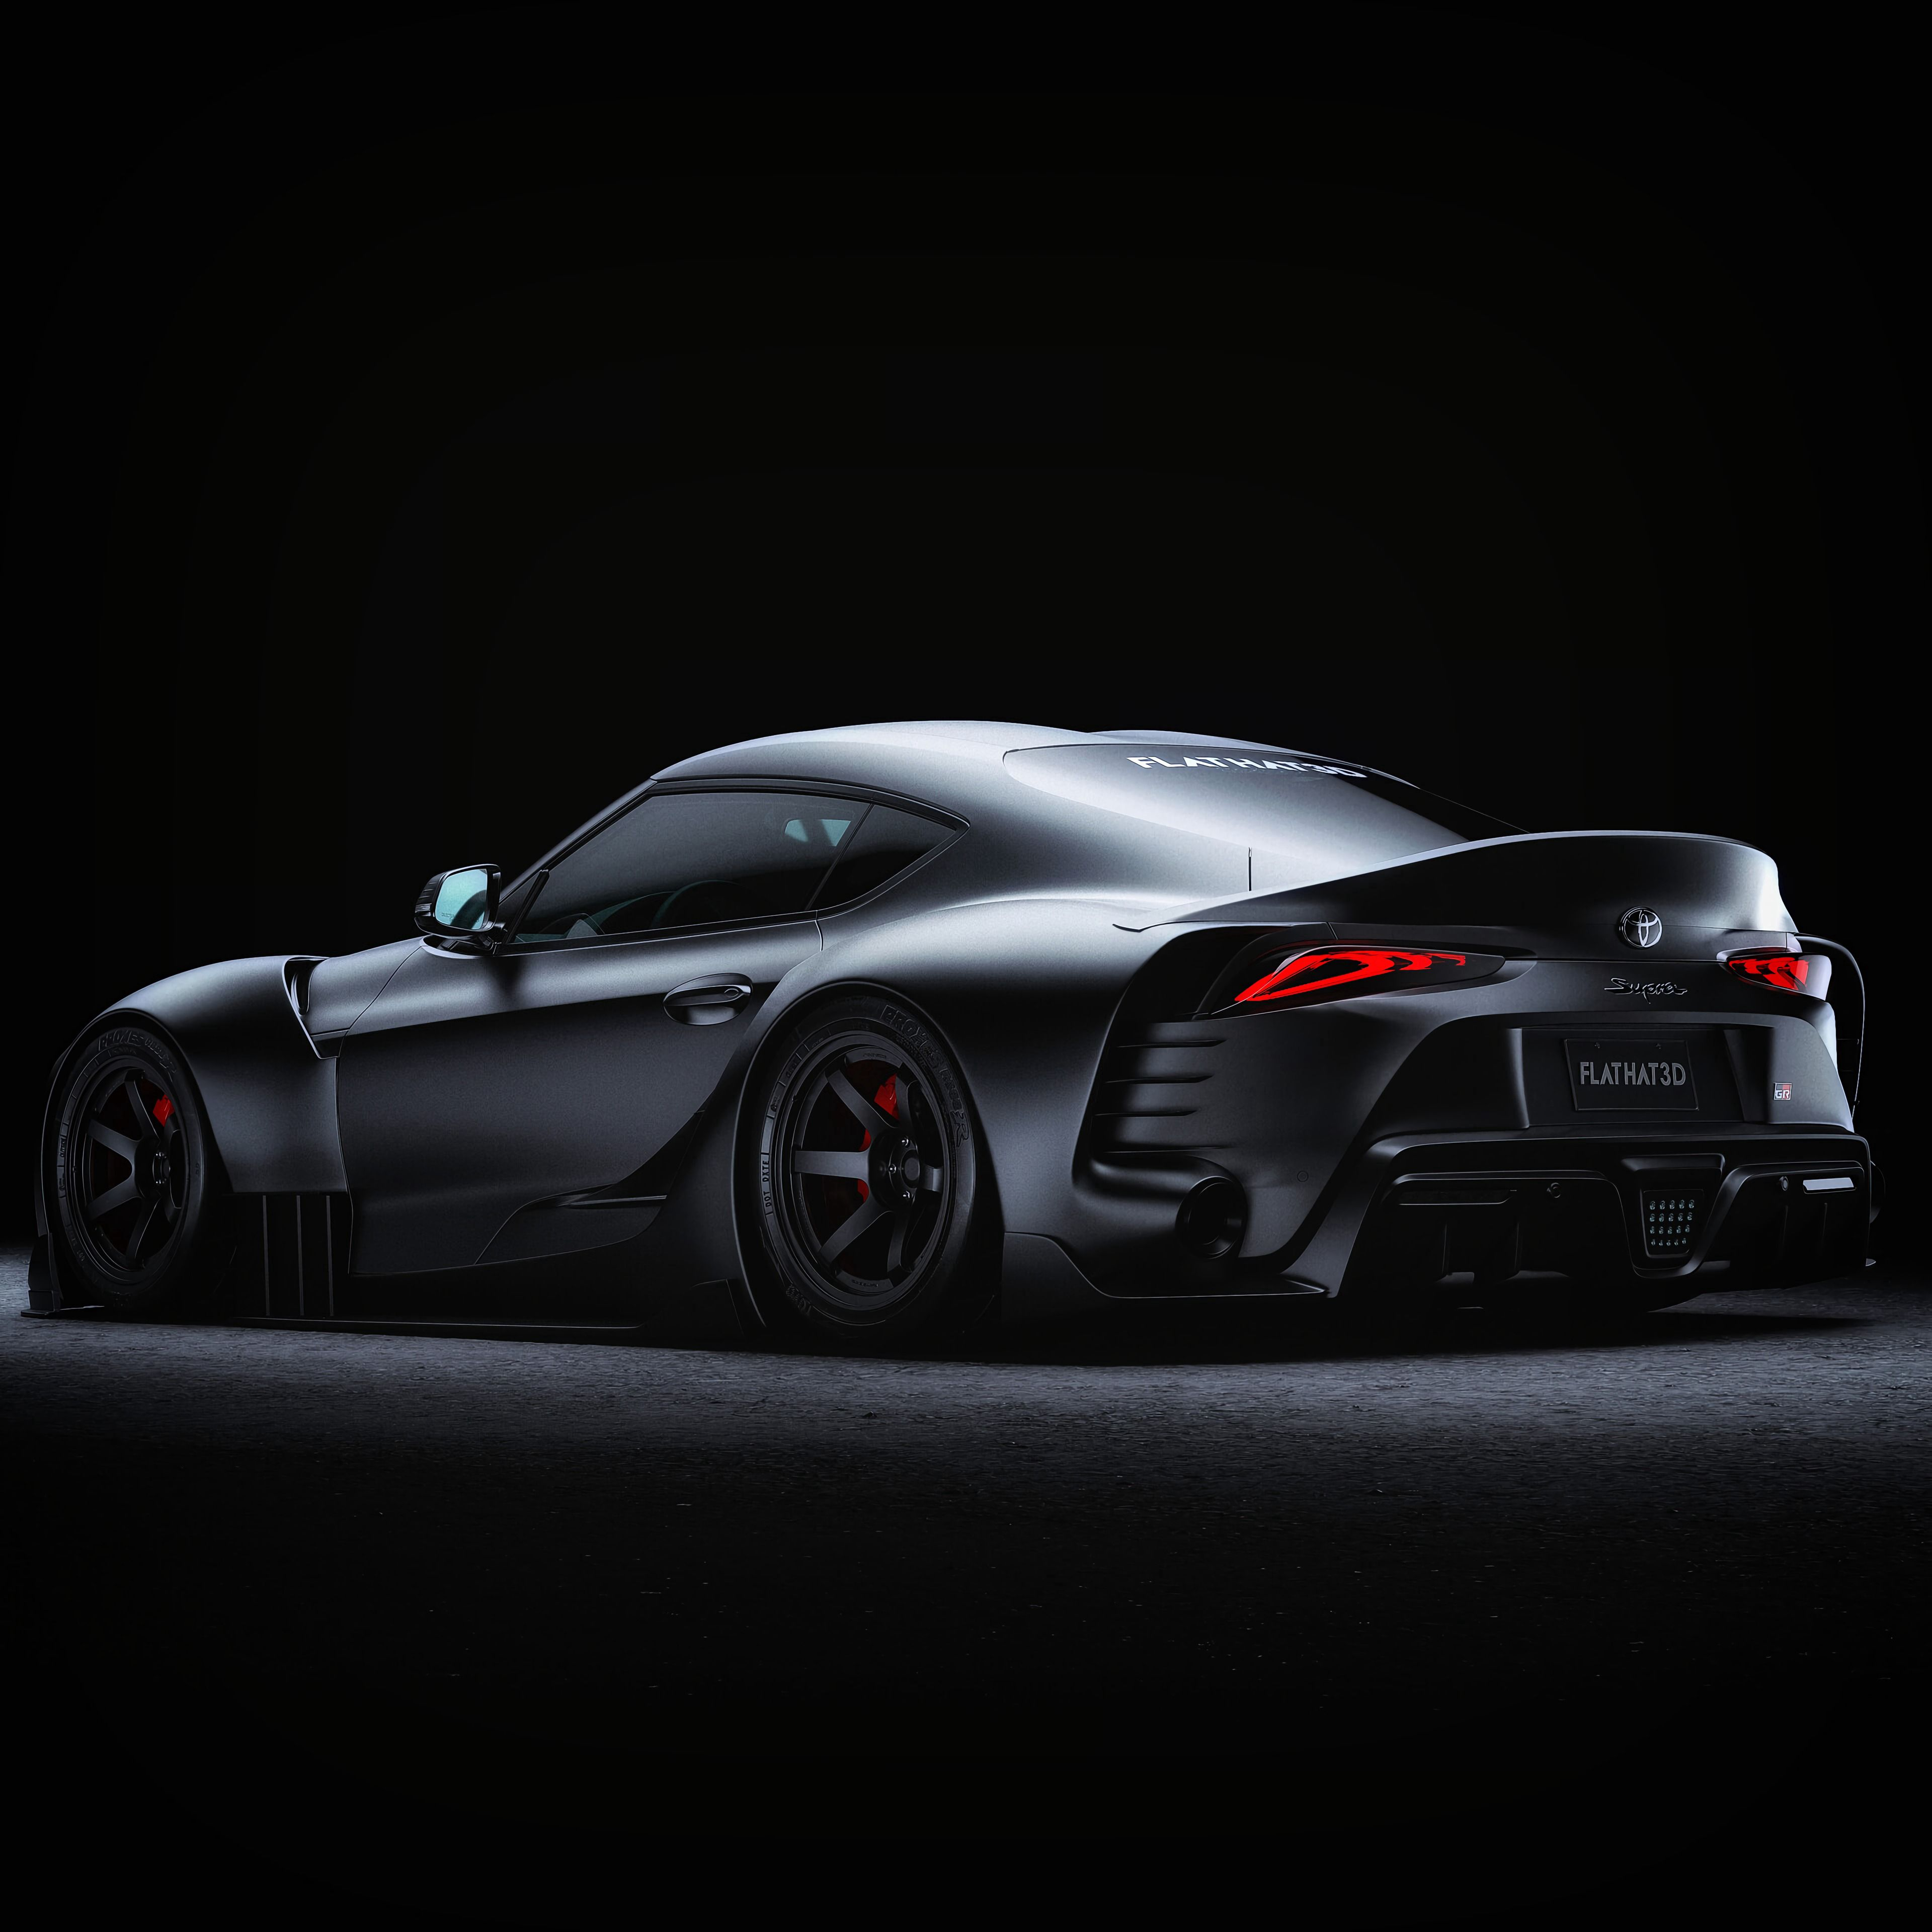 138568 download wallpaper Cars, Toyota Supra, Toyota, Sports Car, Sports, Grey, Side View, Night, Dark screensavers and pictures for free